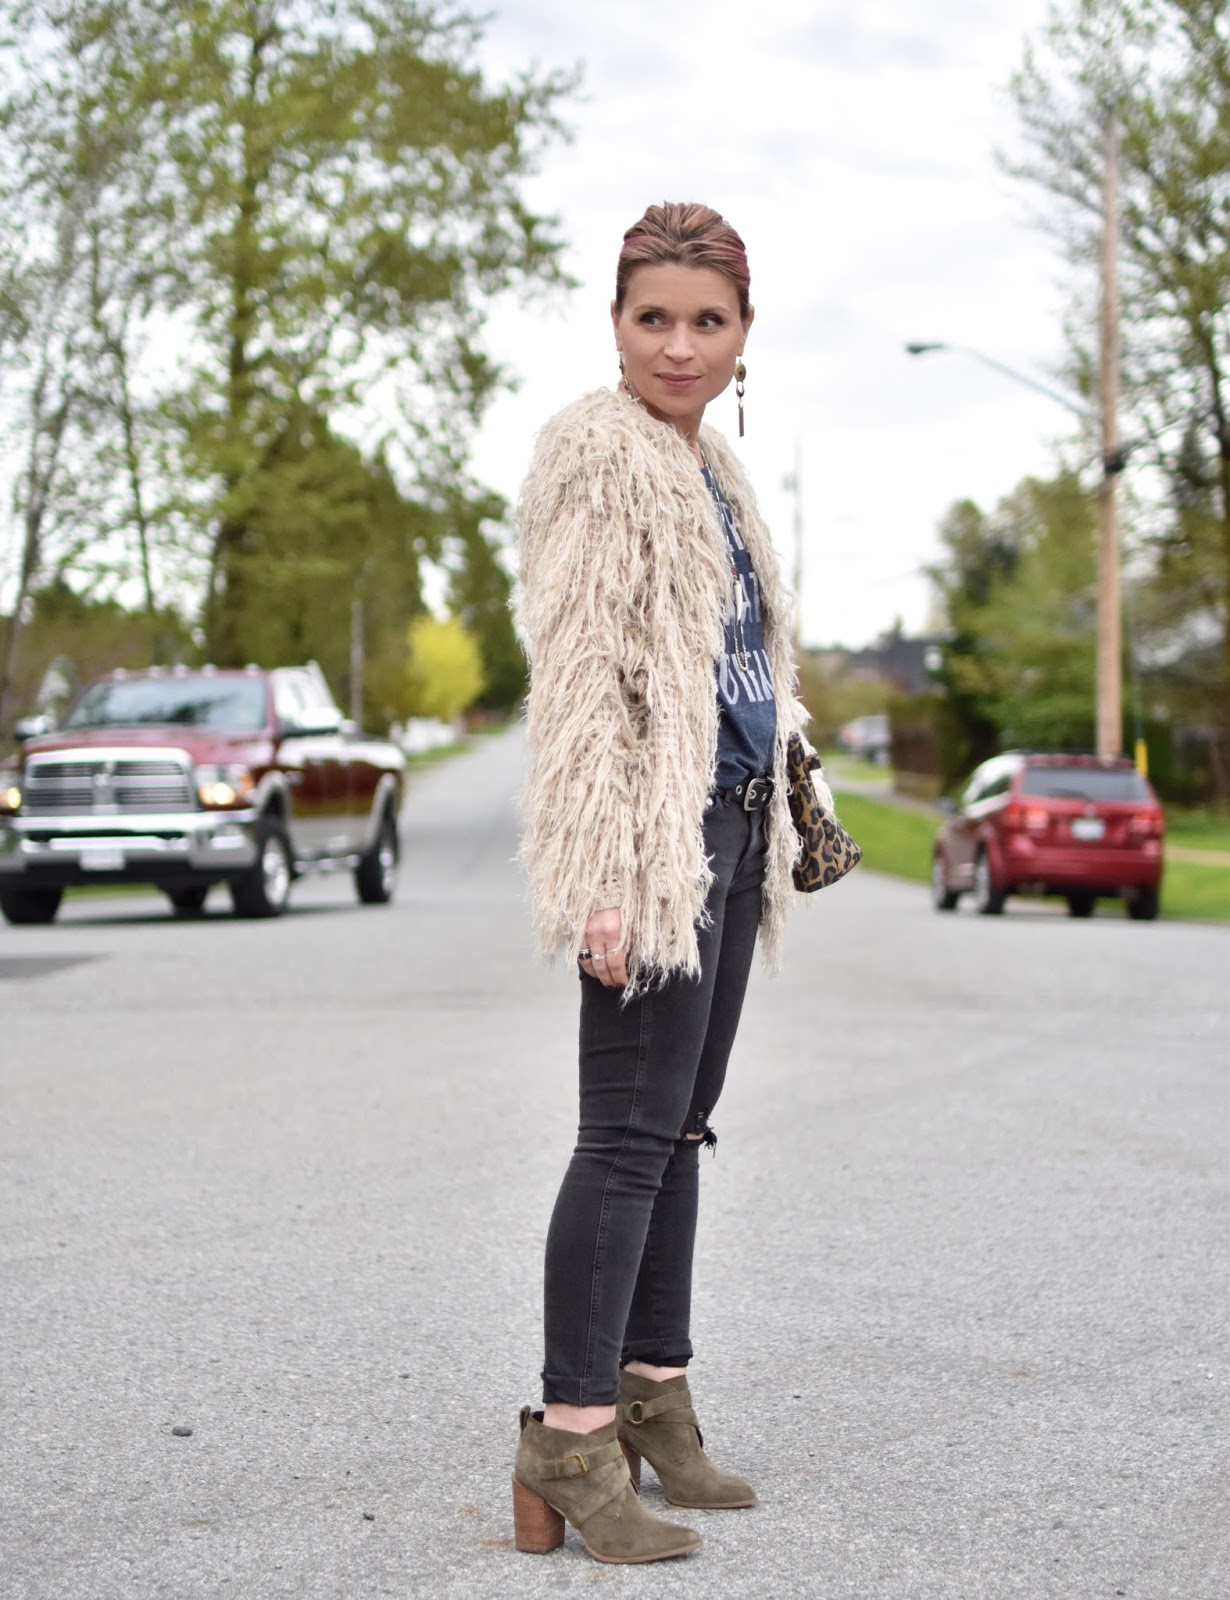 Monika Faulkner outfit inspiration - styling distressed black skinny jeans with a graphic tee, shaggy cardigan, and olive suede booties